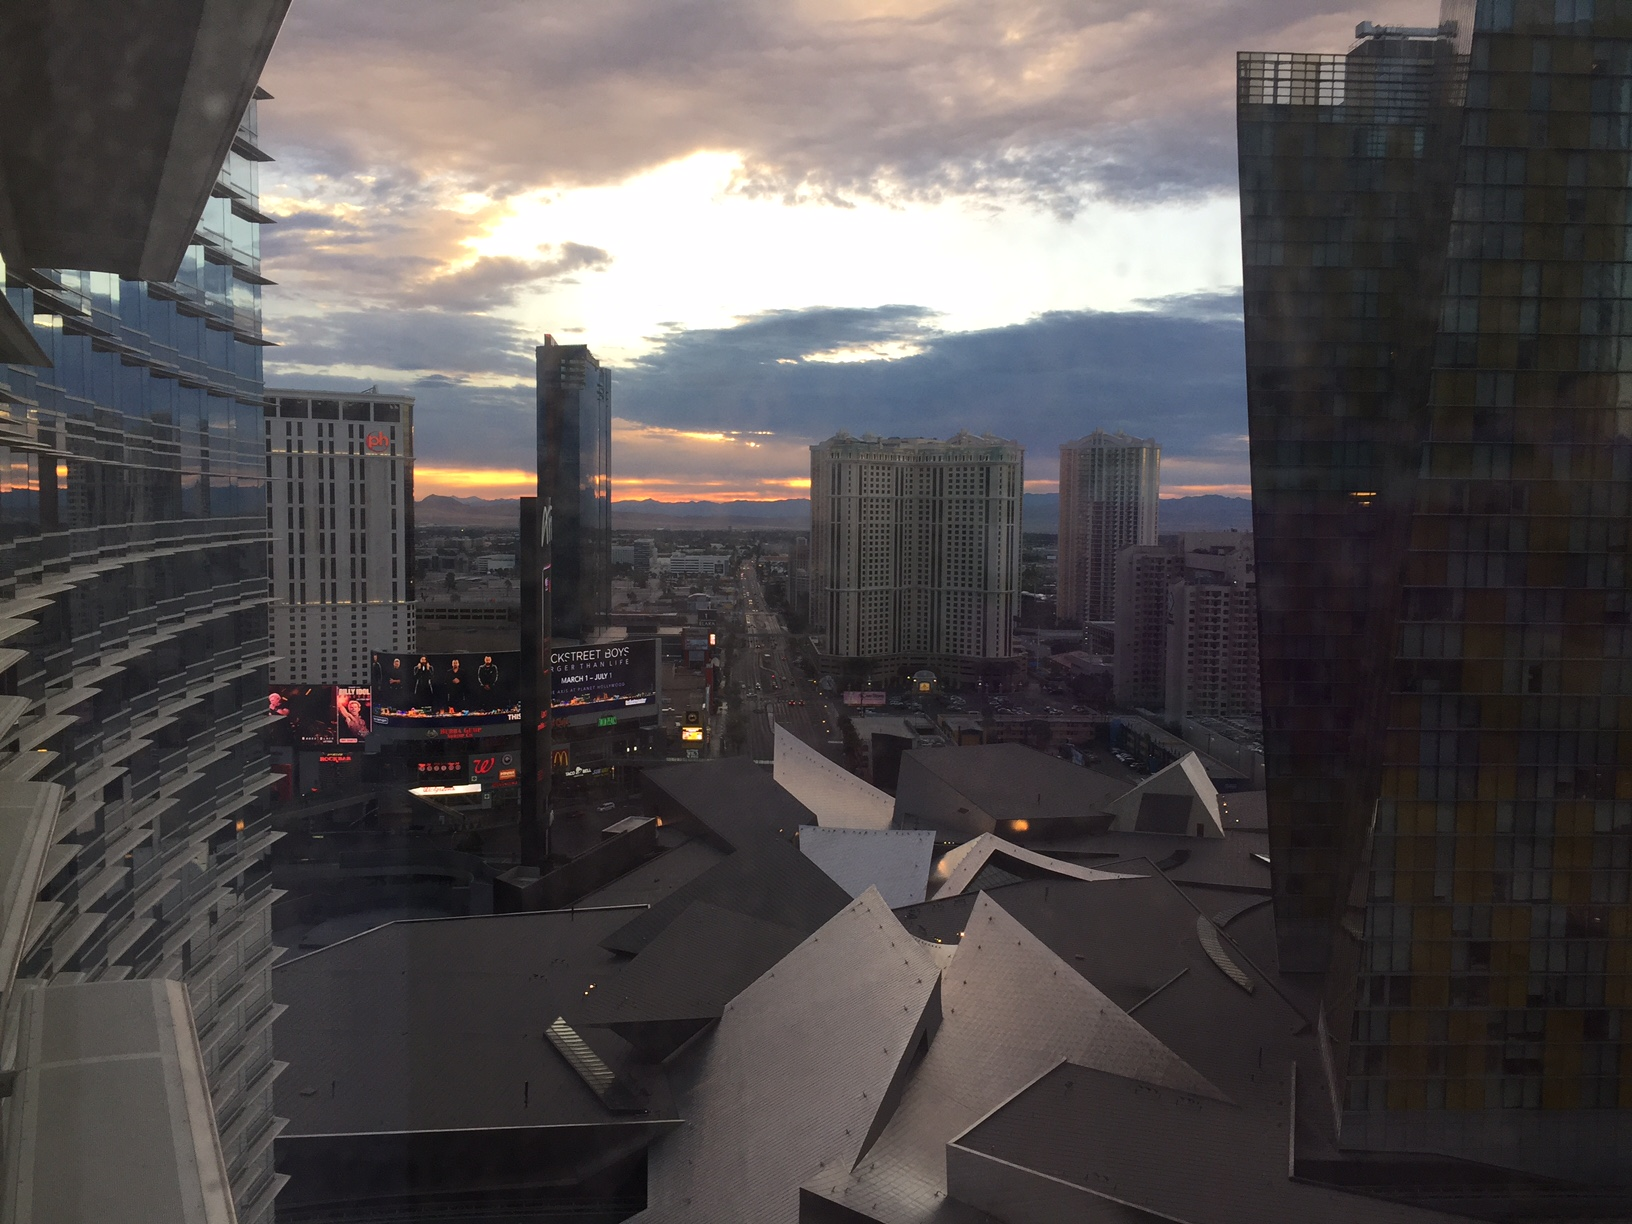 A view of the Las Vegas strip from a guest room at the Aria, during sunrise